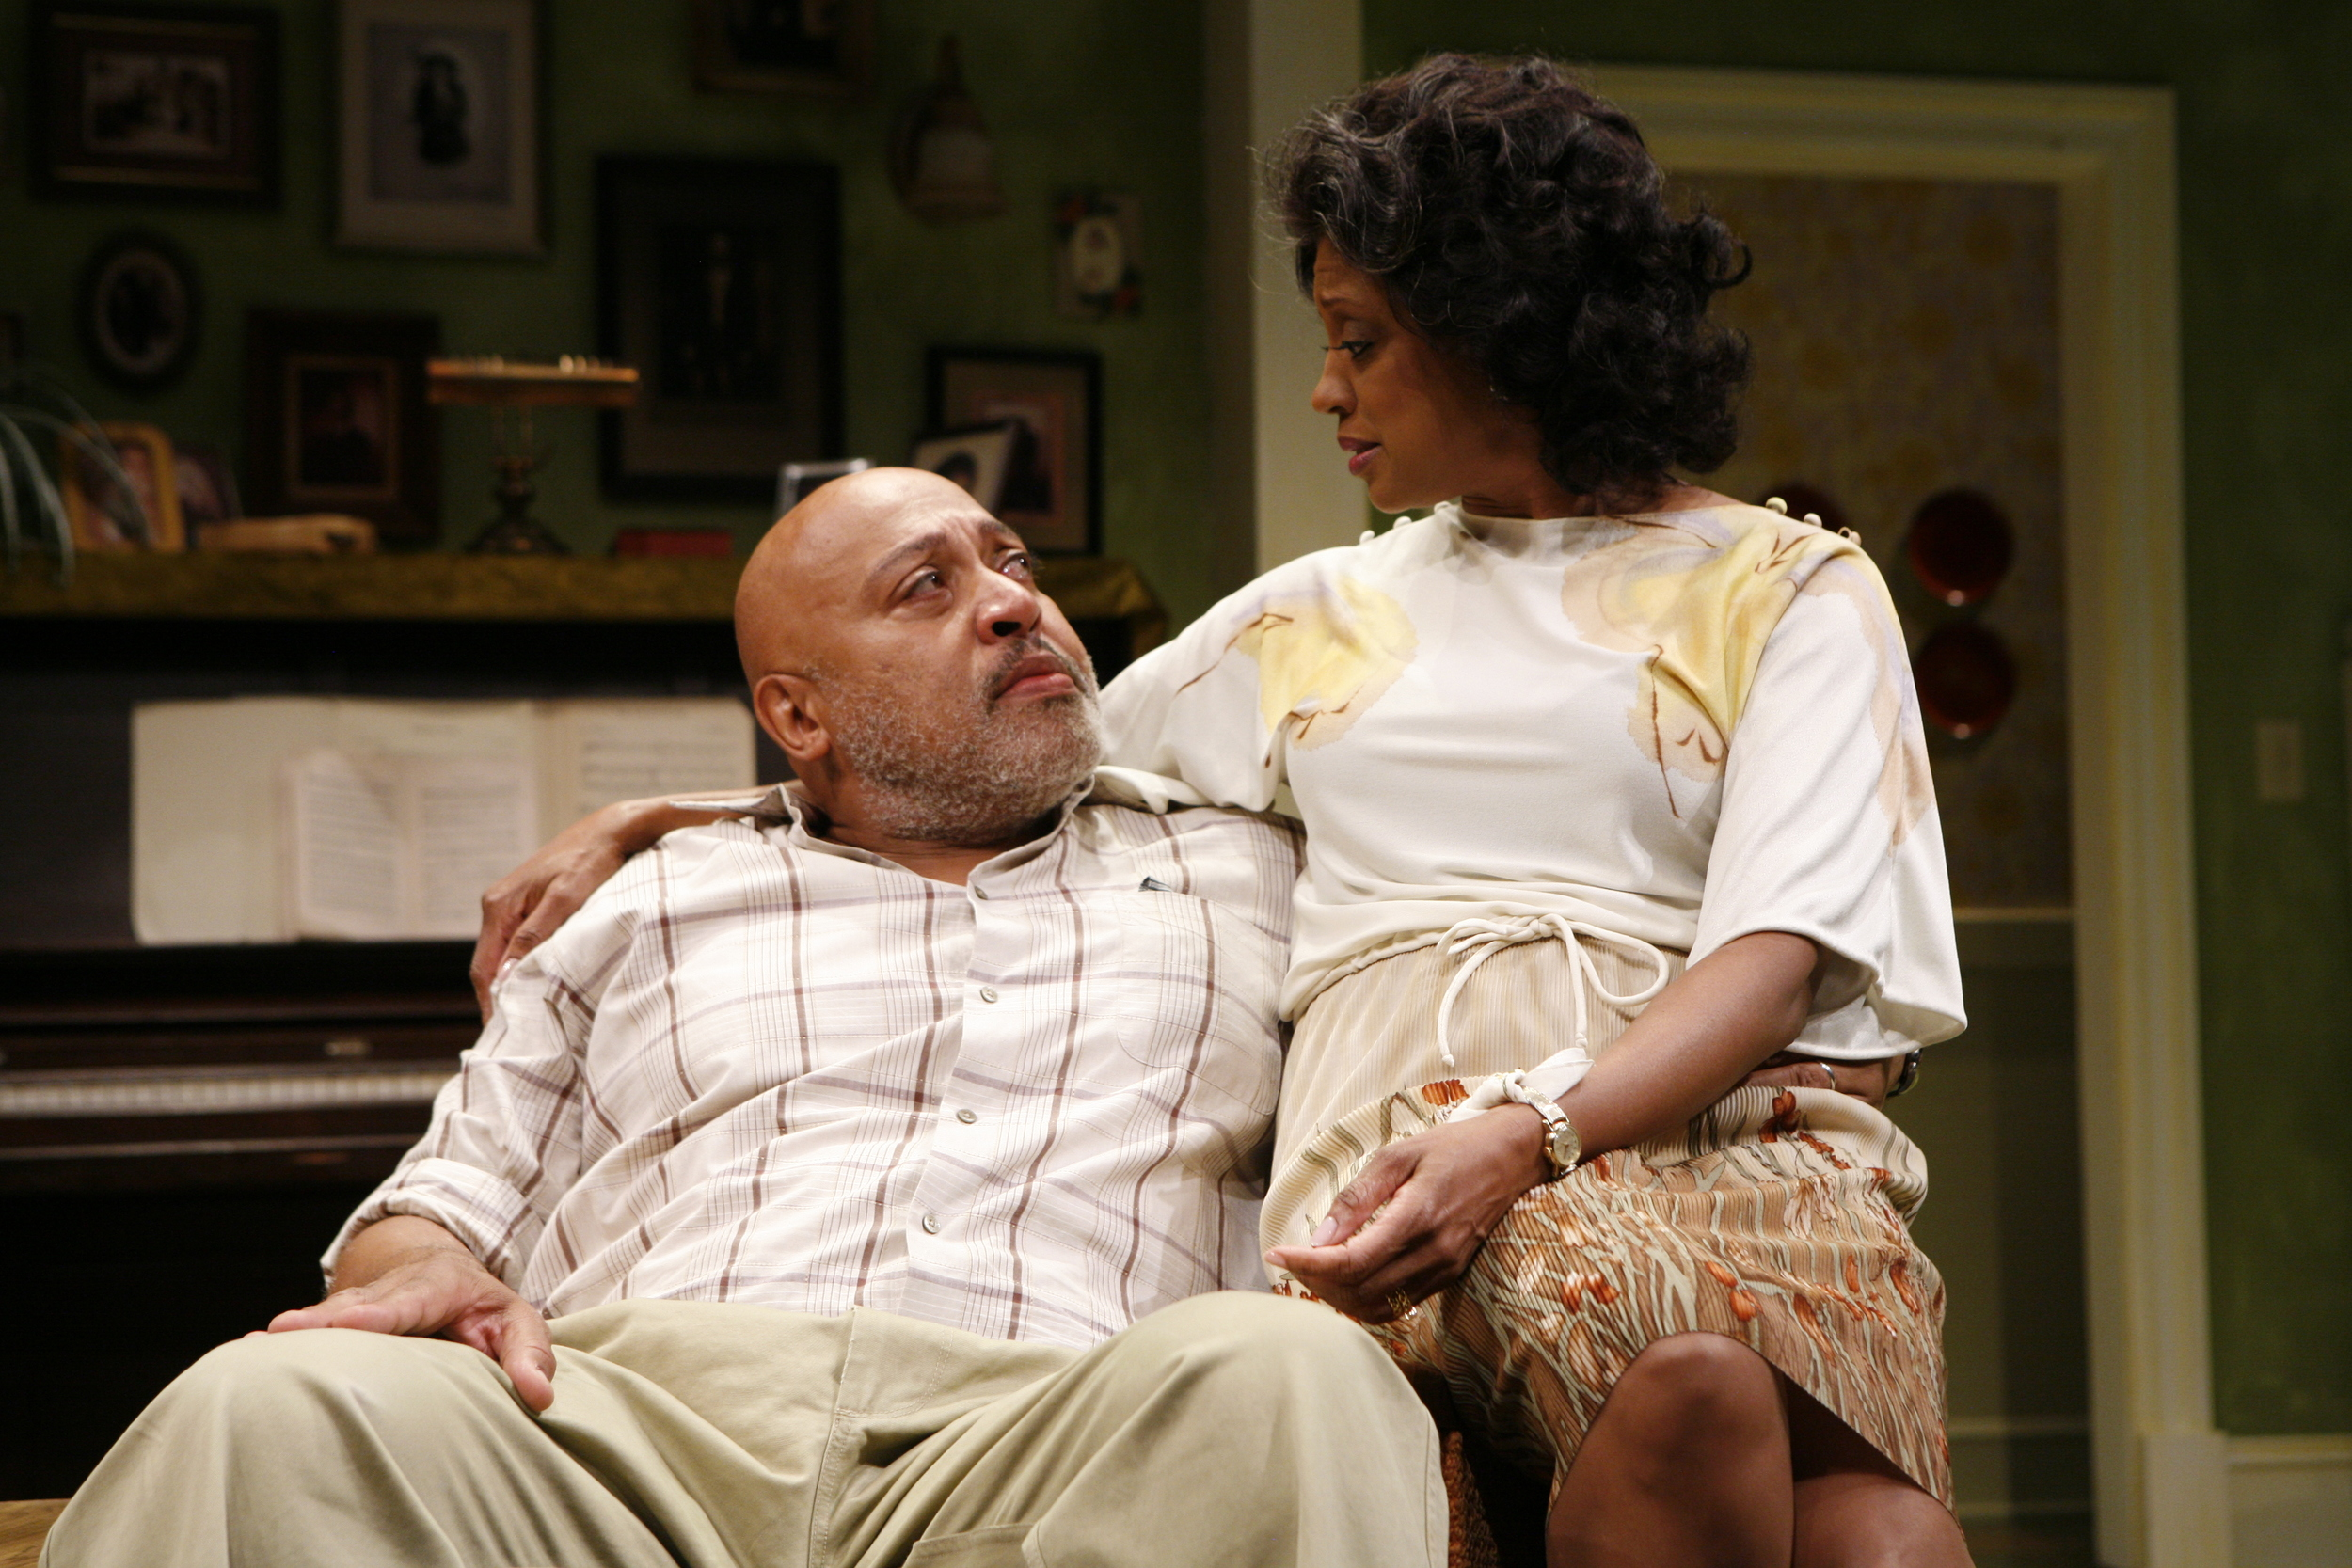 Production Photo - Keith Marva.JPG